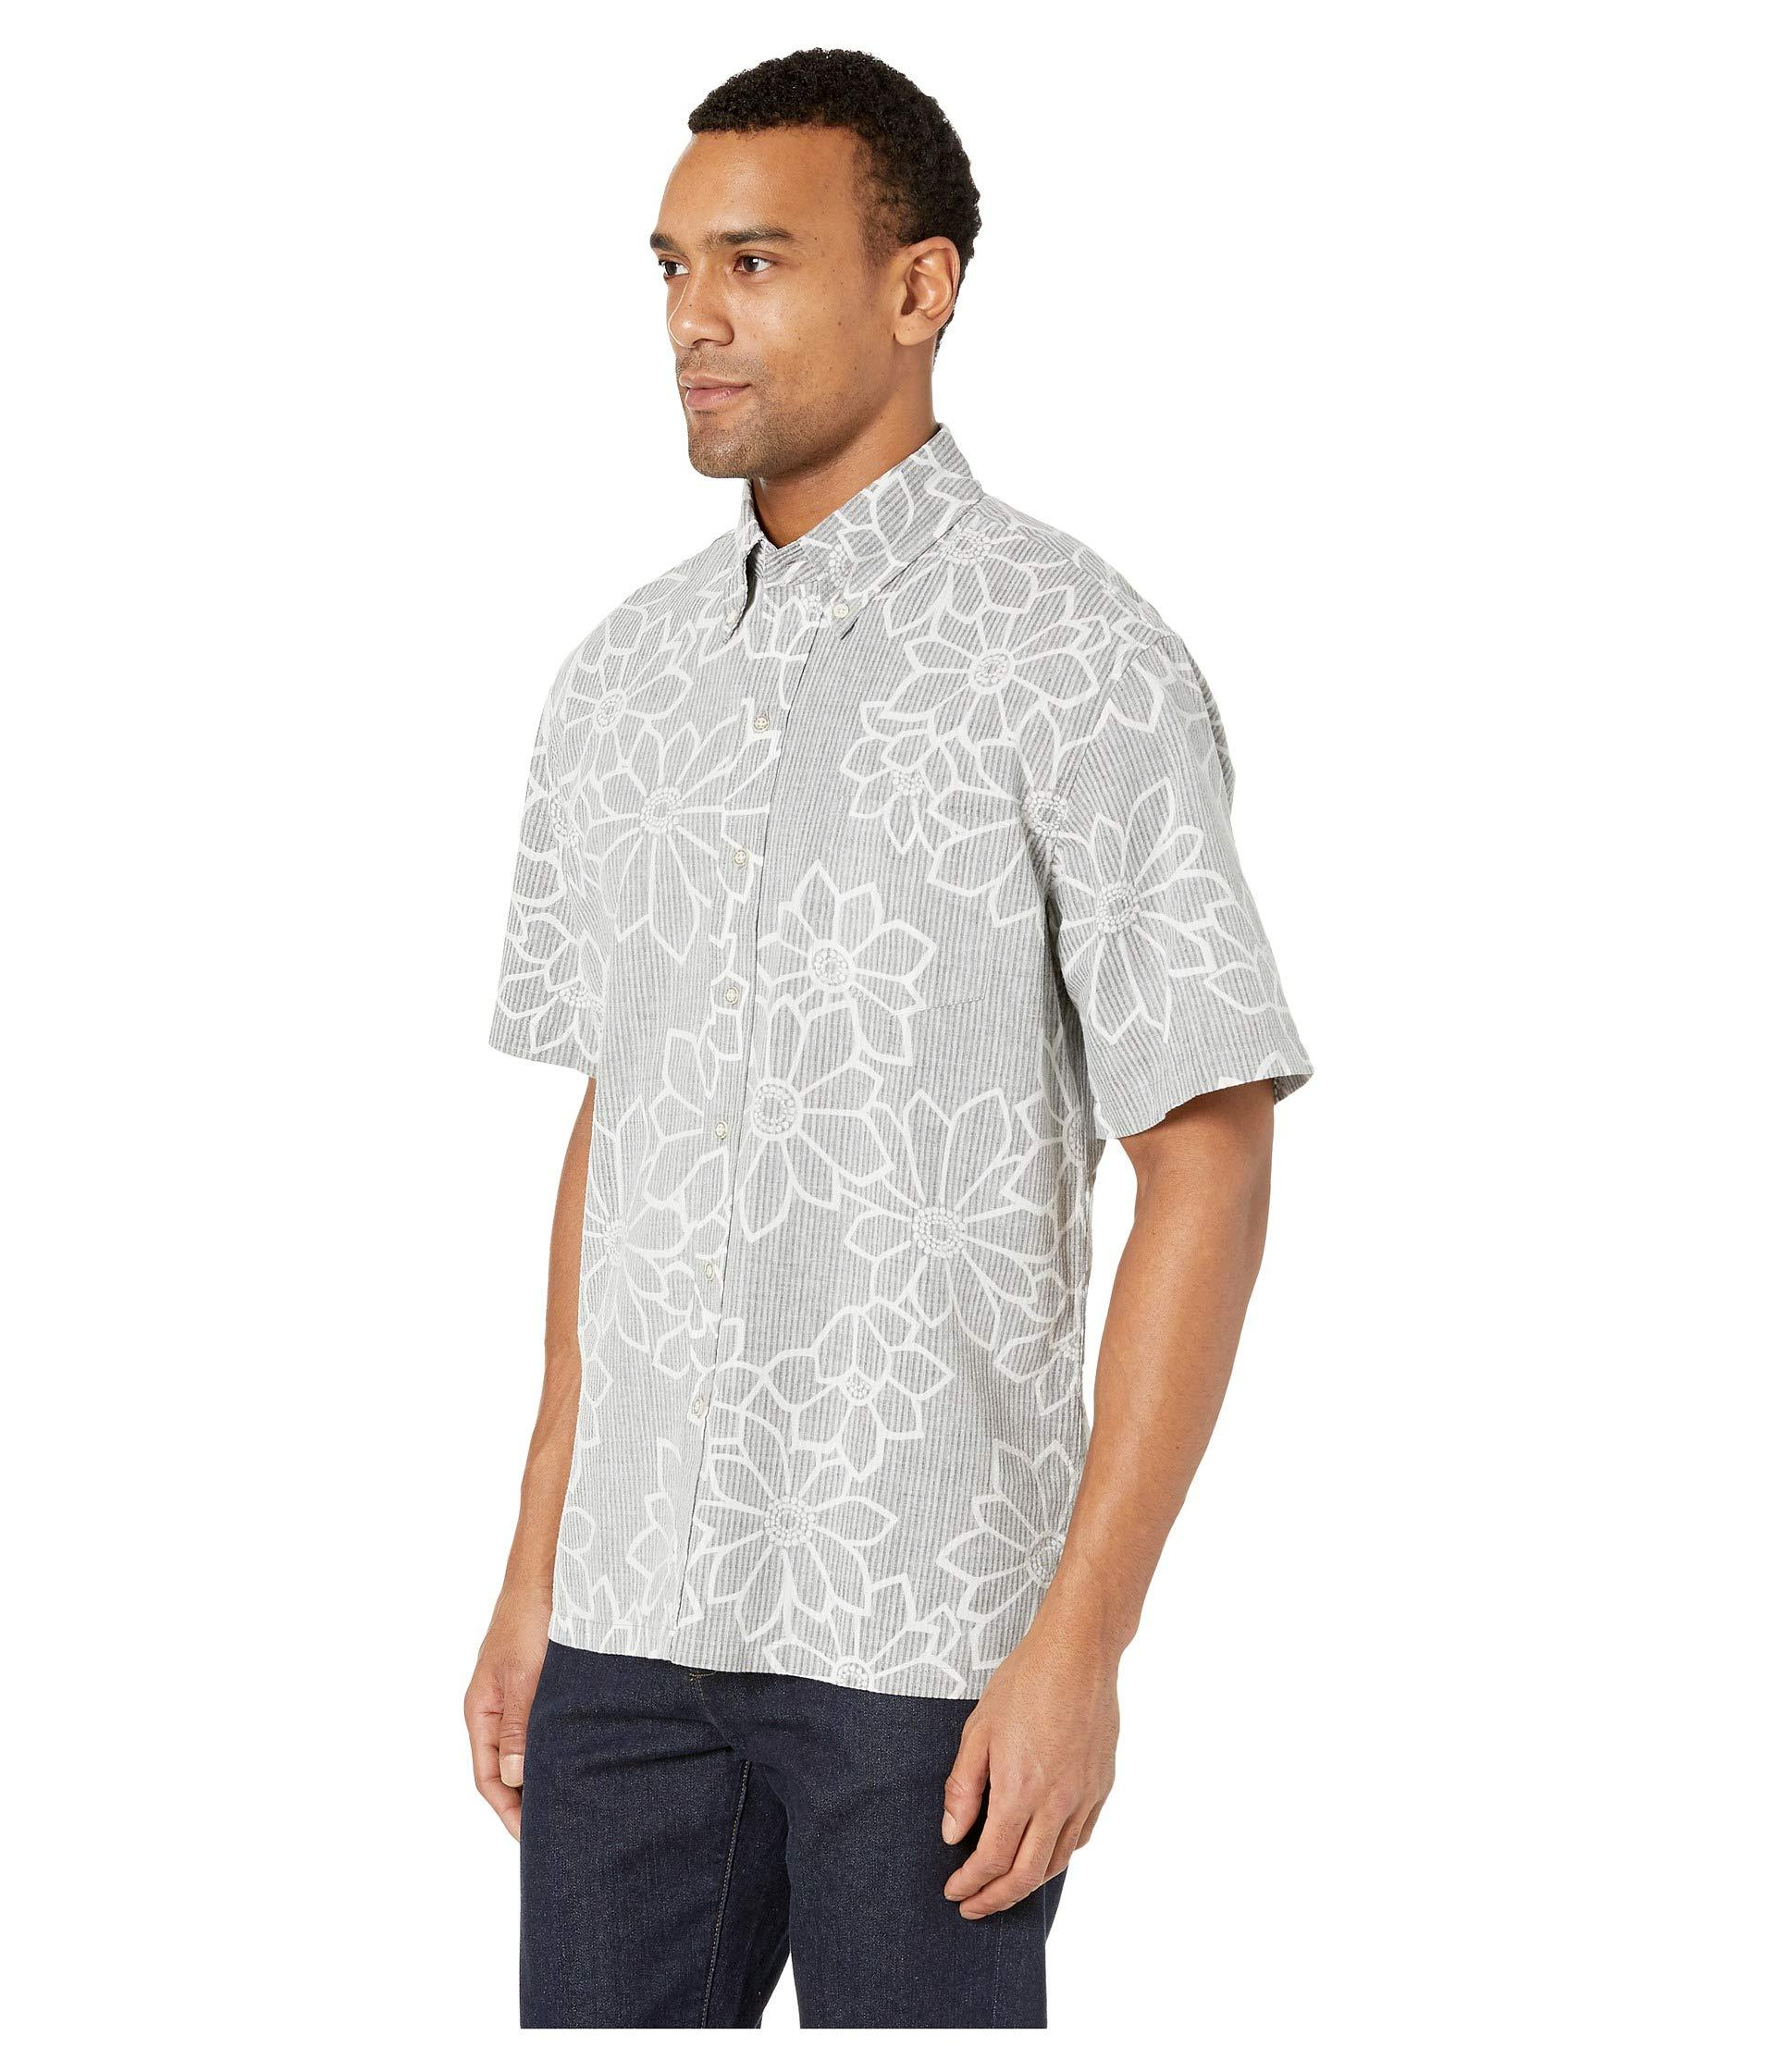 597d1eb36 Lyst - Reyn Spooner Kiku Blossoms Classic Fit Hawaiian Shirt (obsidian)  Men's Short Sleeve Button Up in Gray for Men